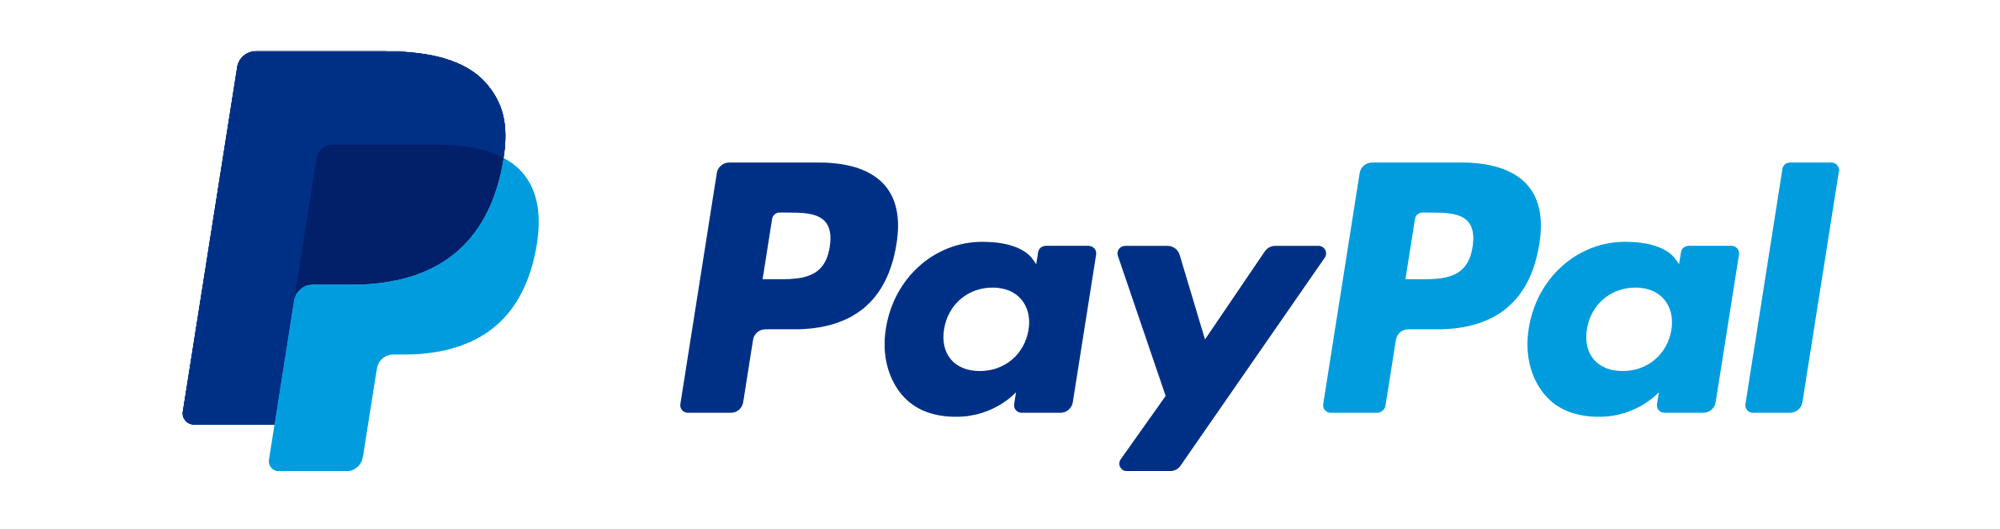 Support (PayPal link) Logo